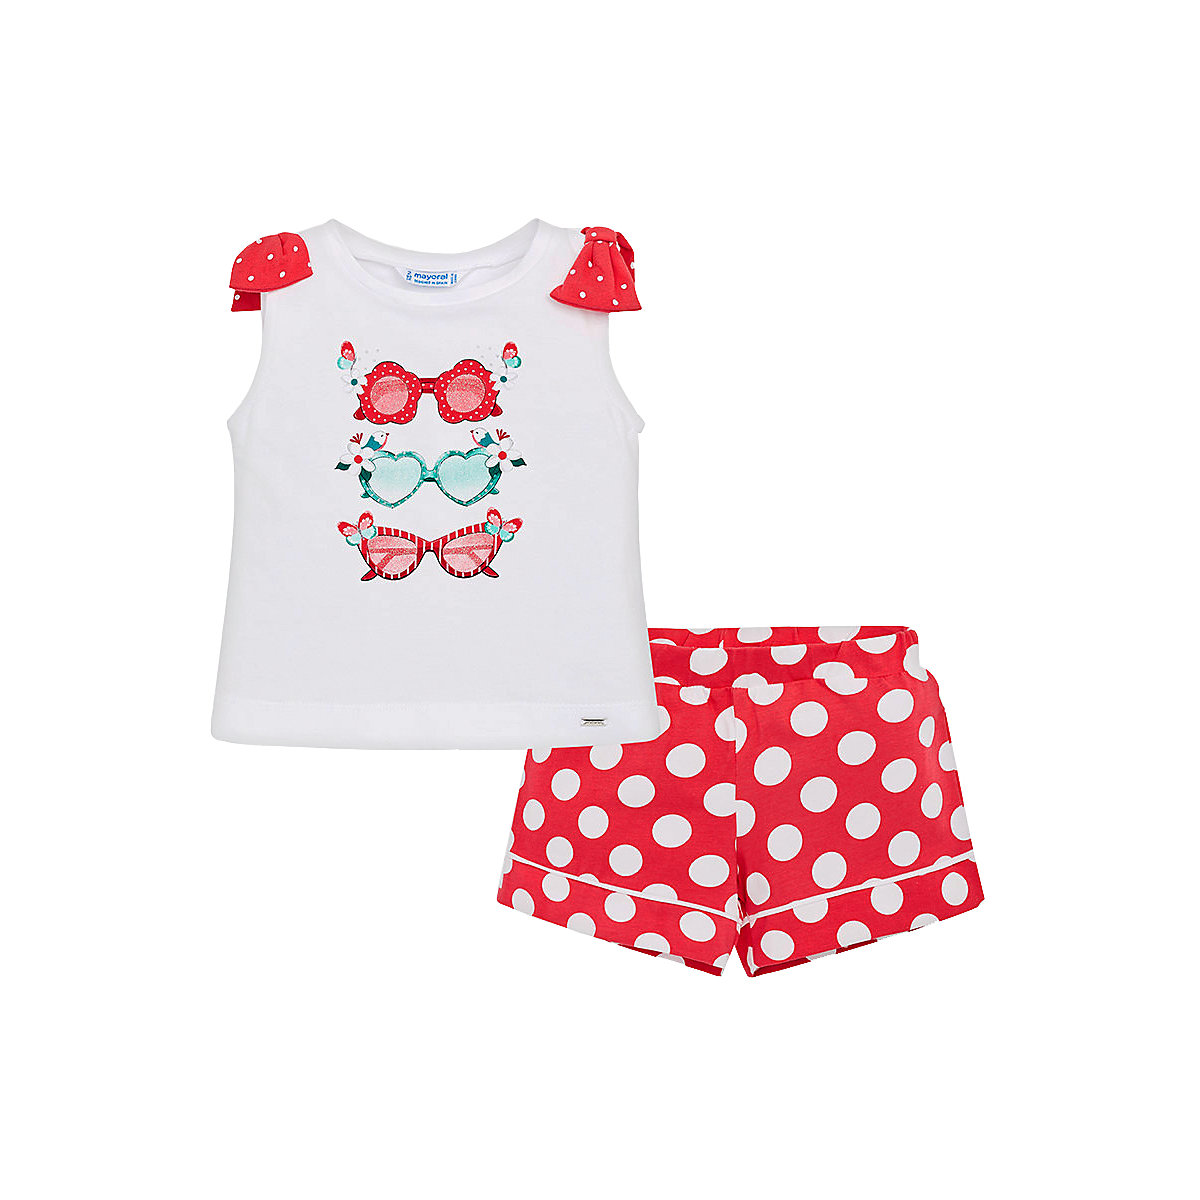 MAYORAL Baby's Sets 10688889 Cotton Girls Fashion clothing costume for girl shorts T-shirt hot summer sportswear jerseys shorts skeleton pattern cycling sets for outdoor sport